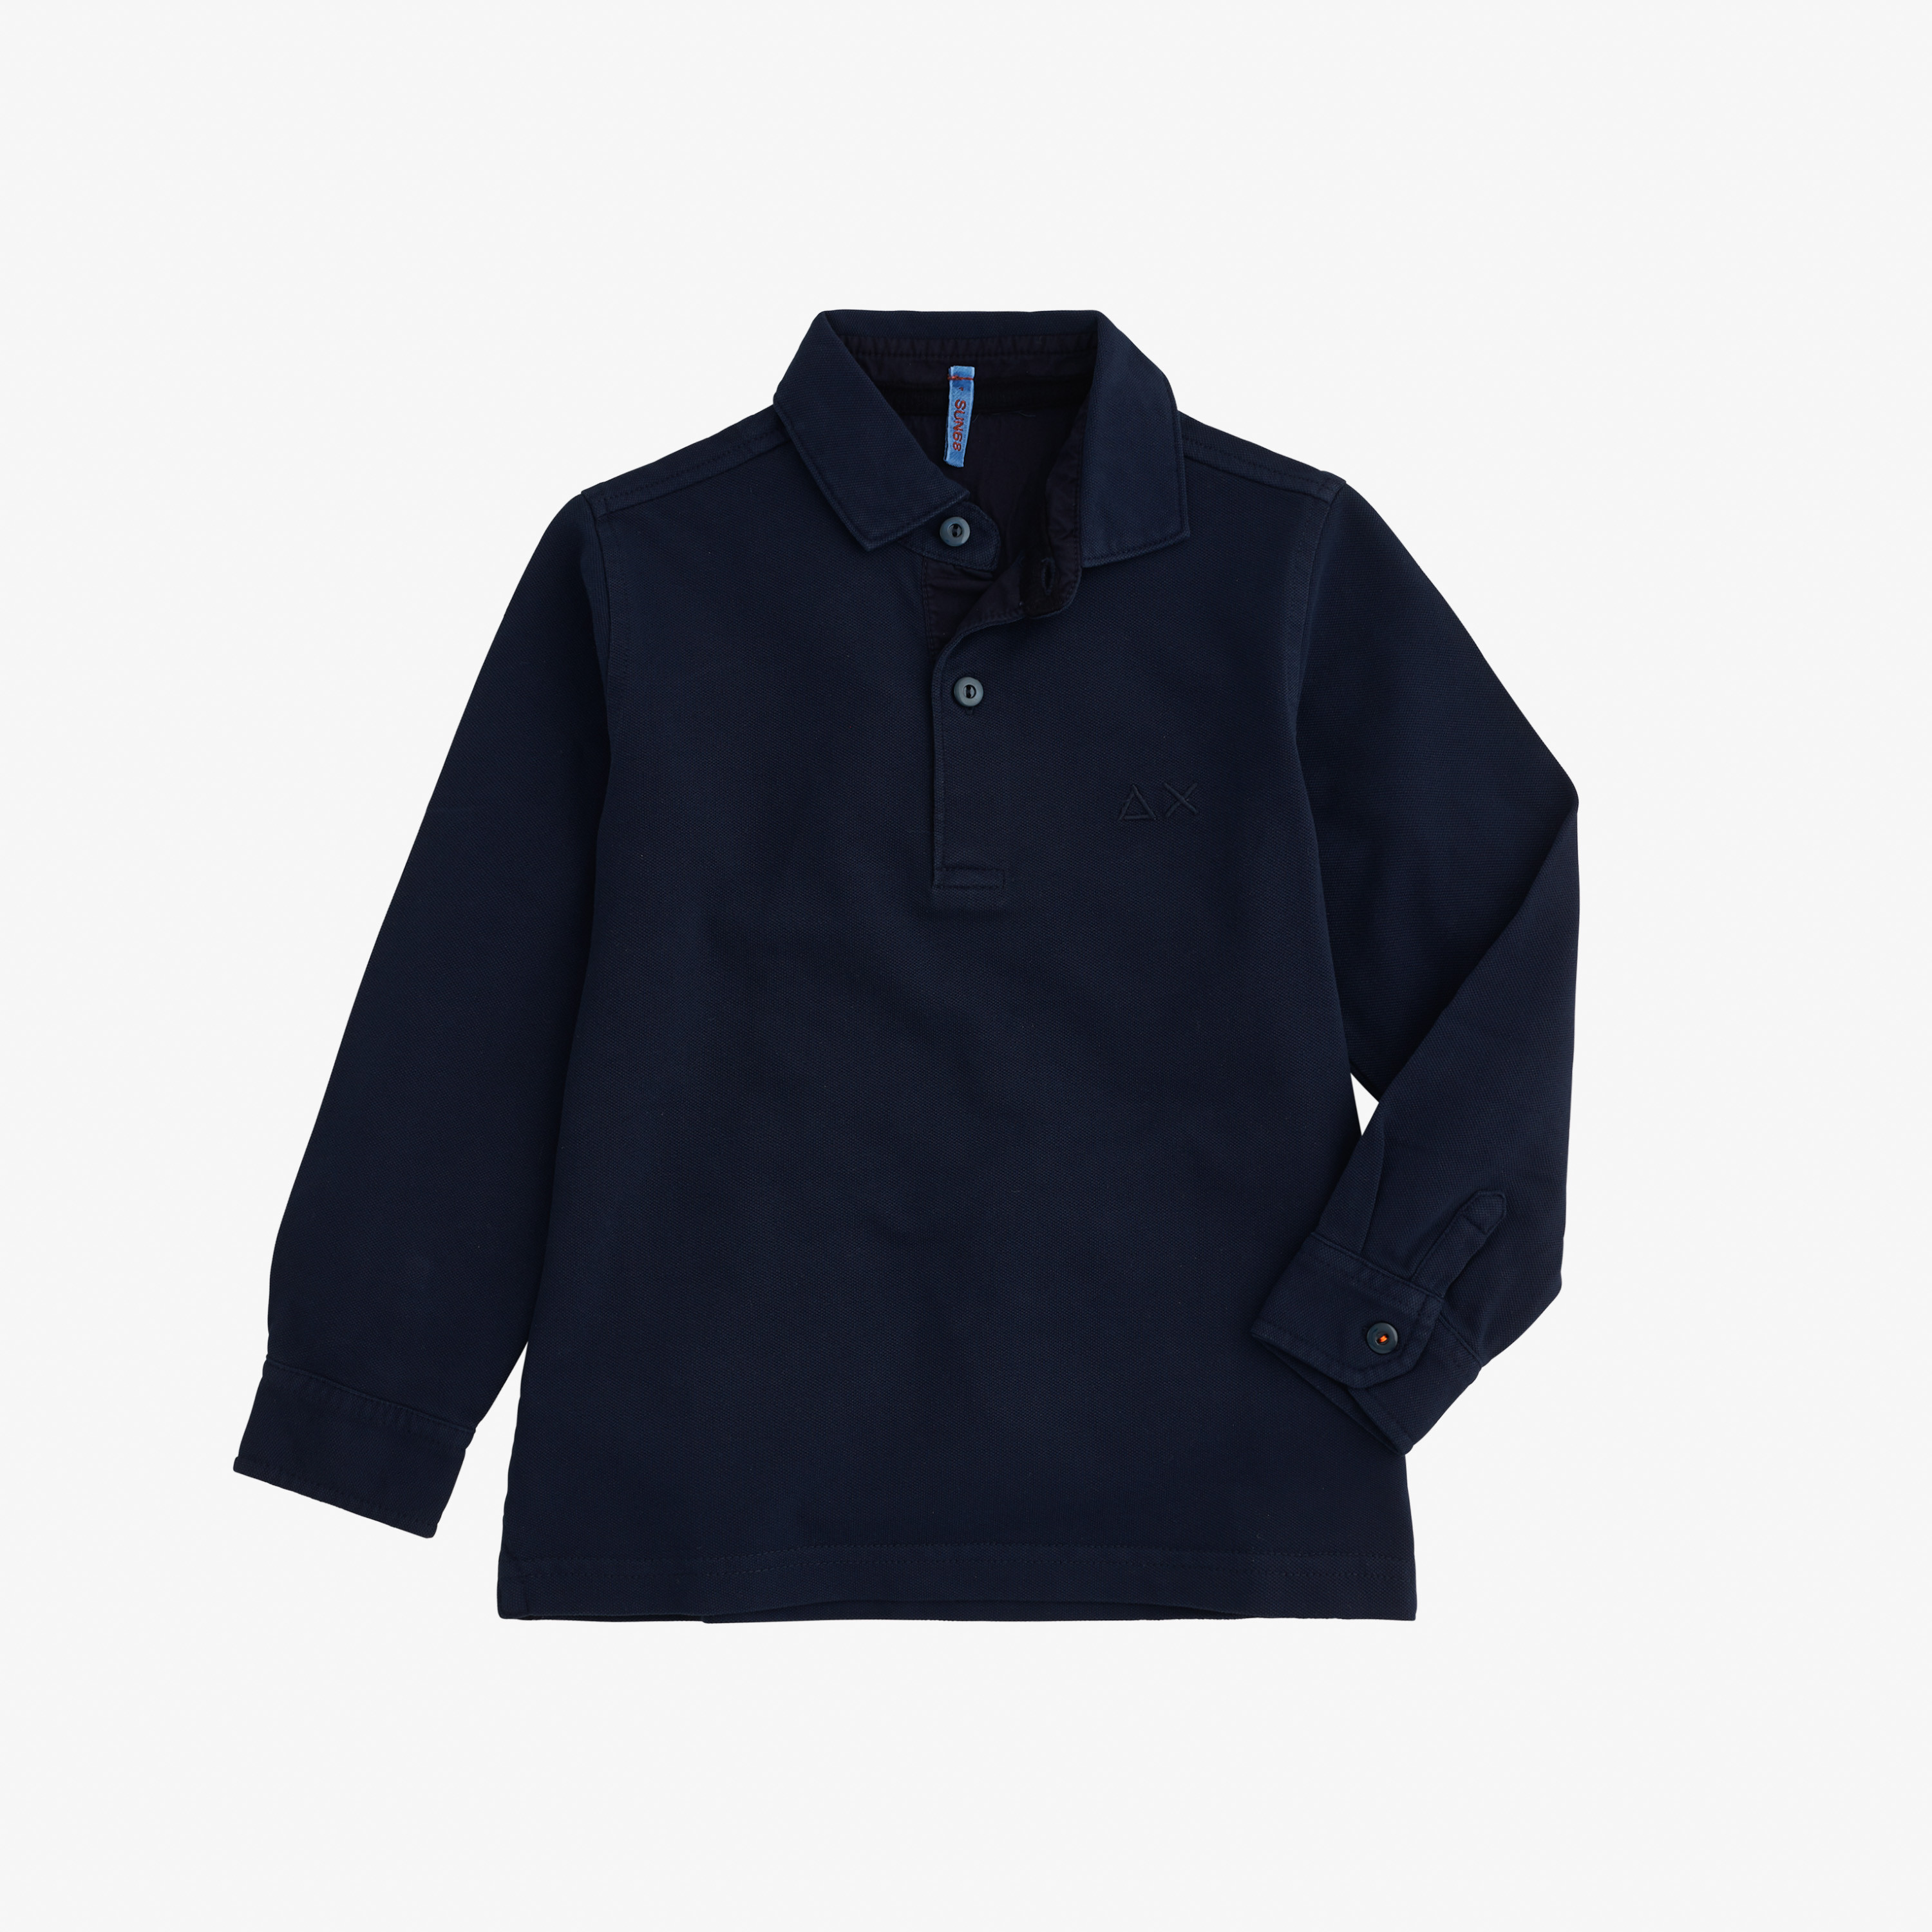 BOY'S POLO COLD DYE L/S NAVY BLUE